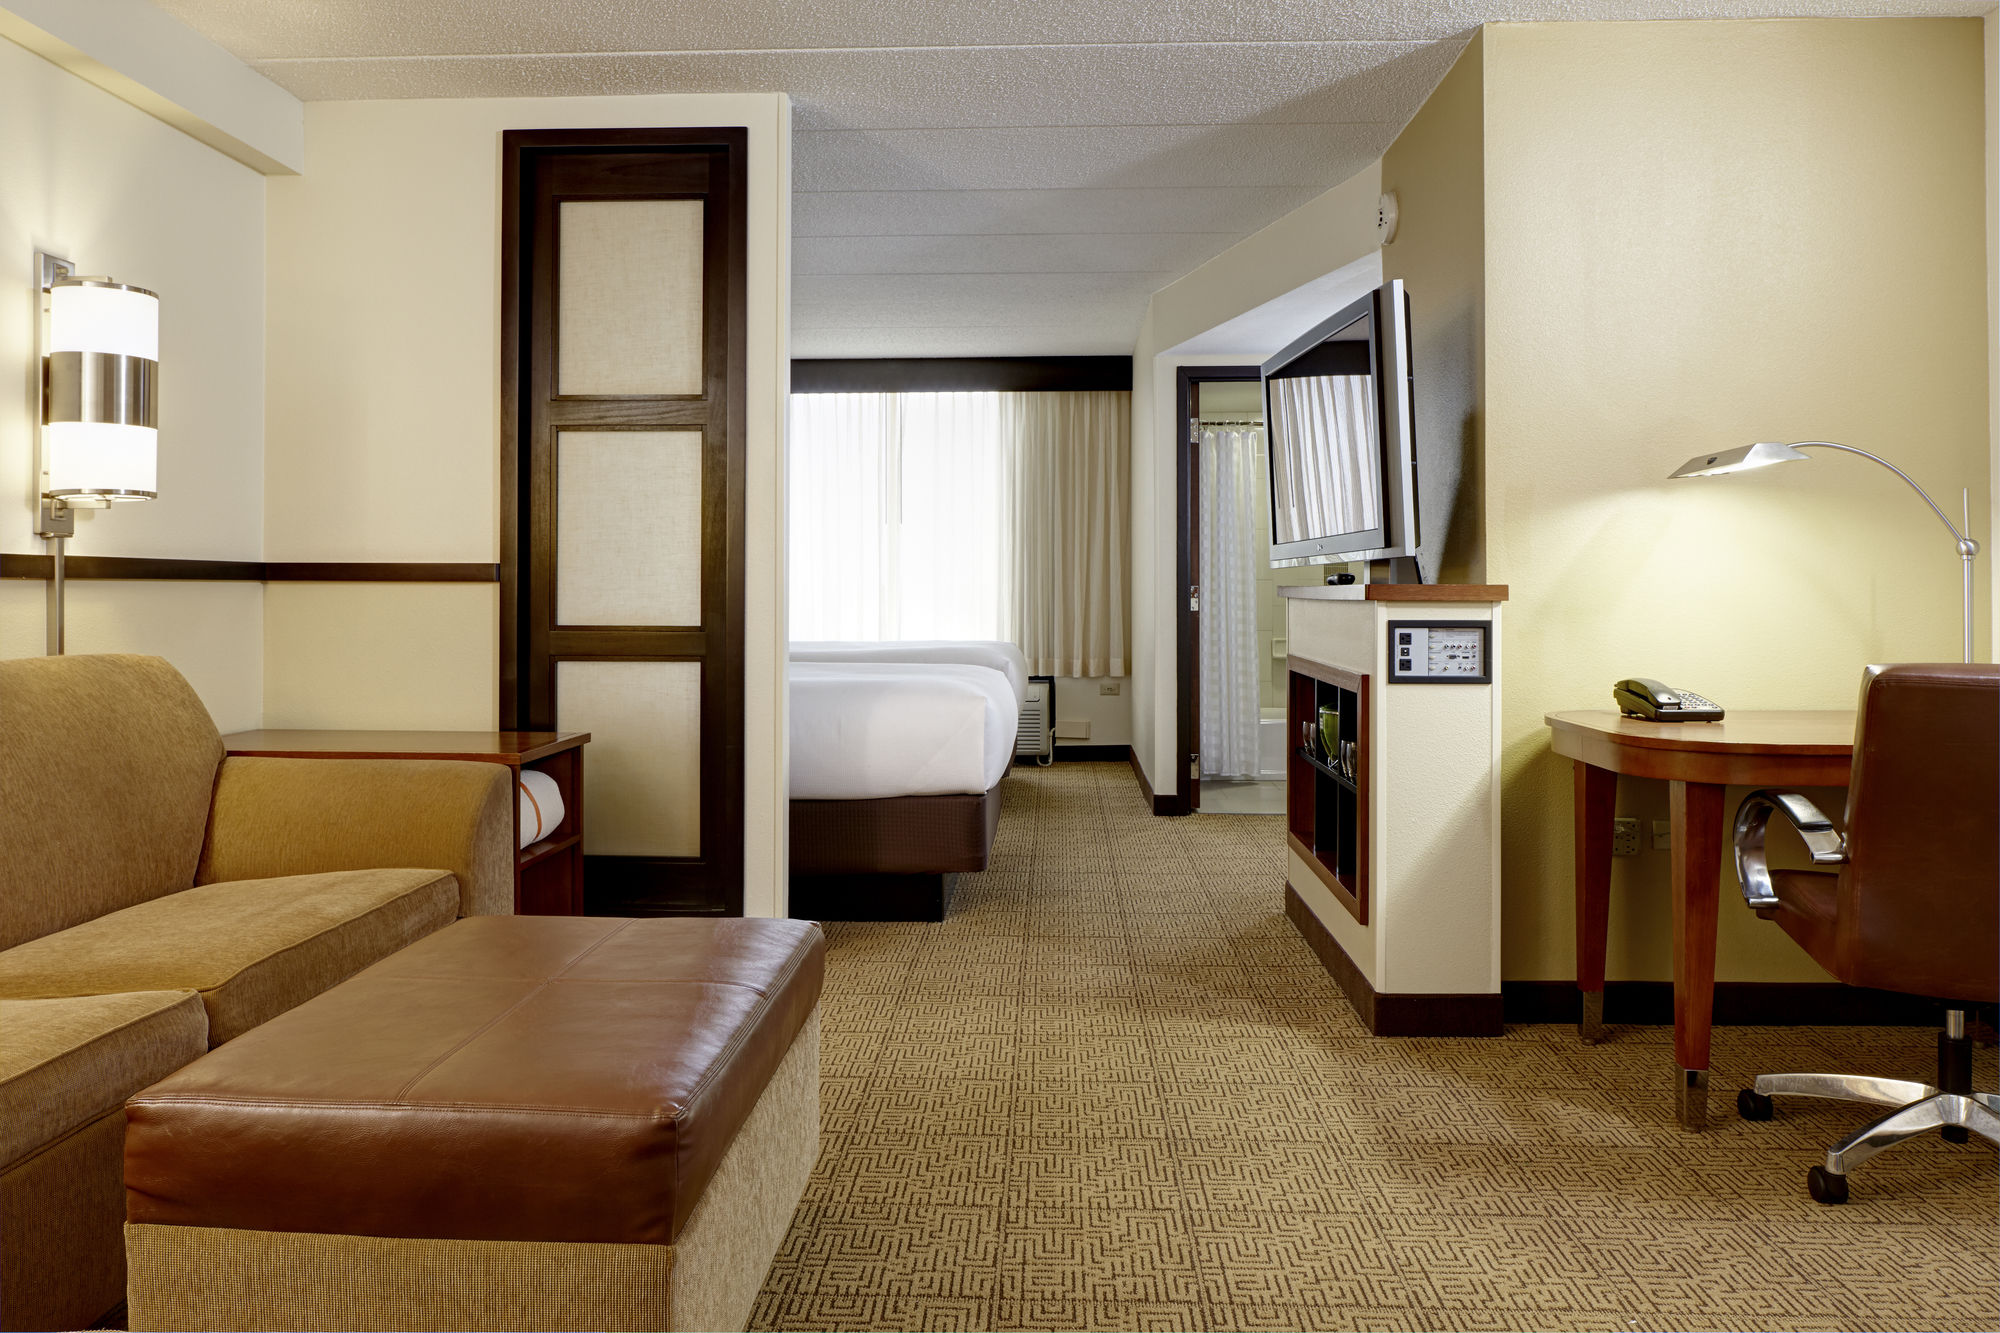 miami hotel coupons for miami florida freehotelcoupons com